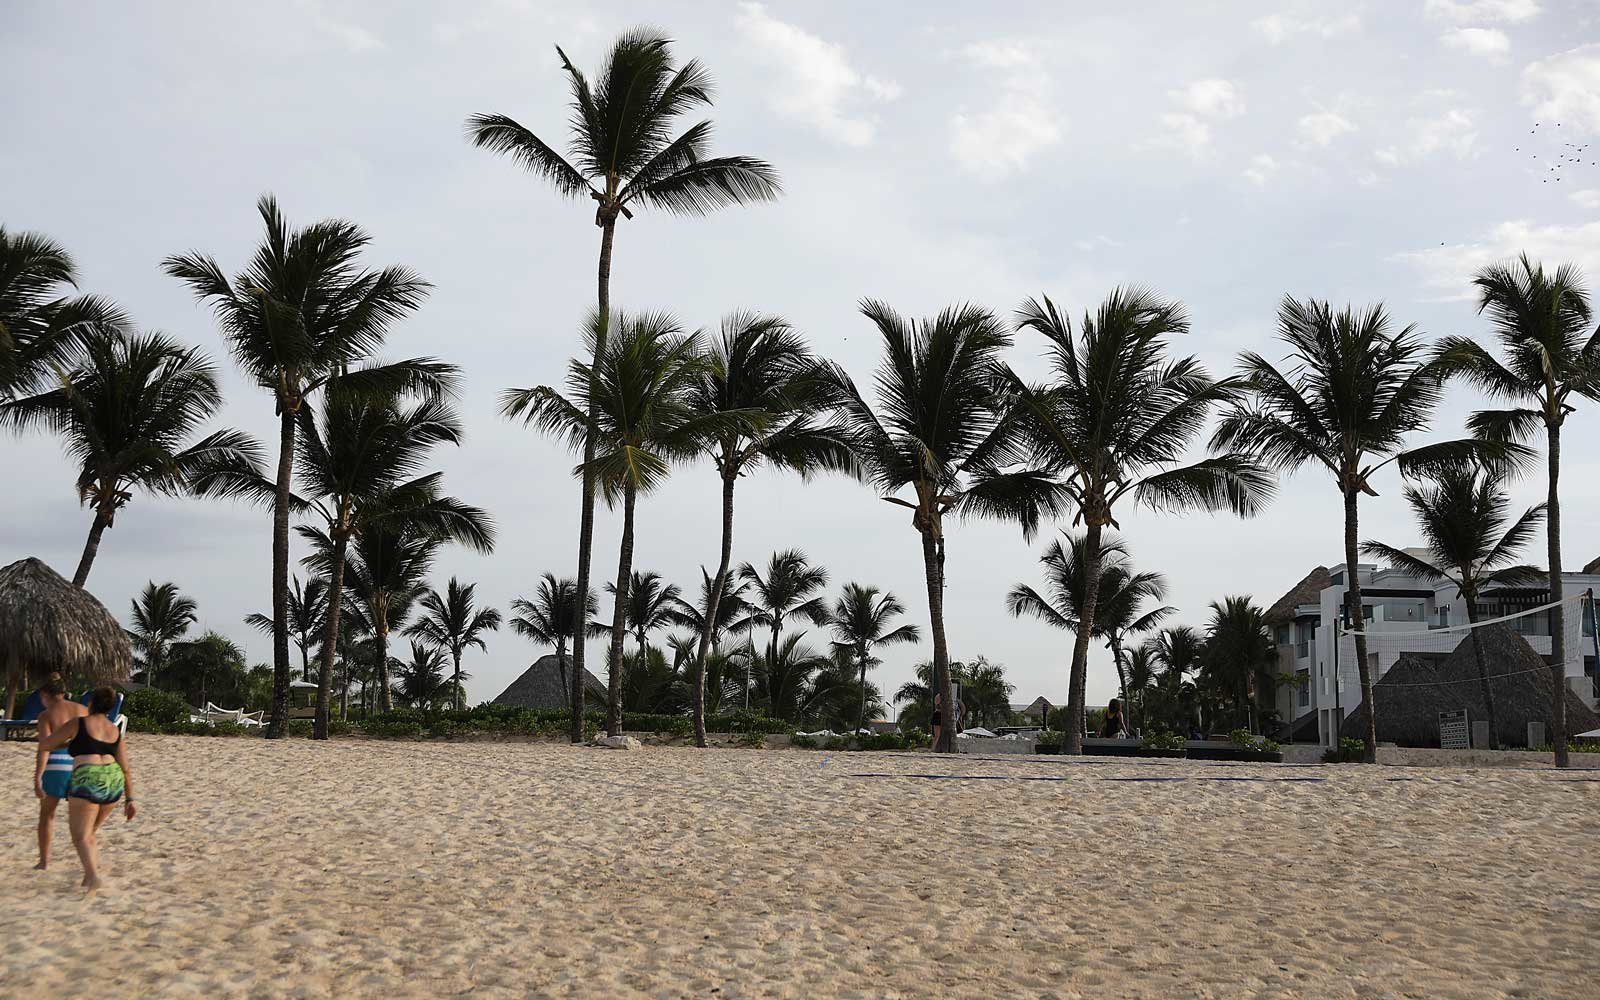 Dominican Republic tourists died of natural causes, not tainted alcohol, FBI report says